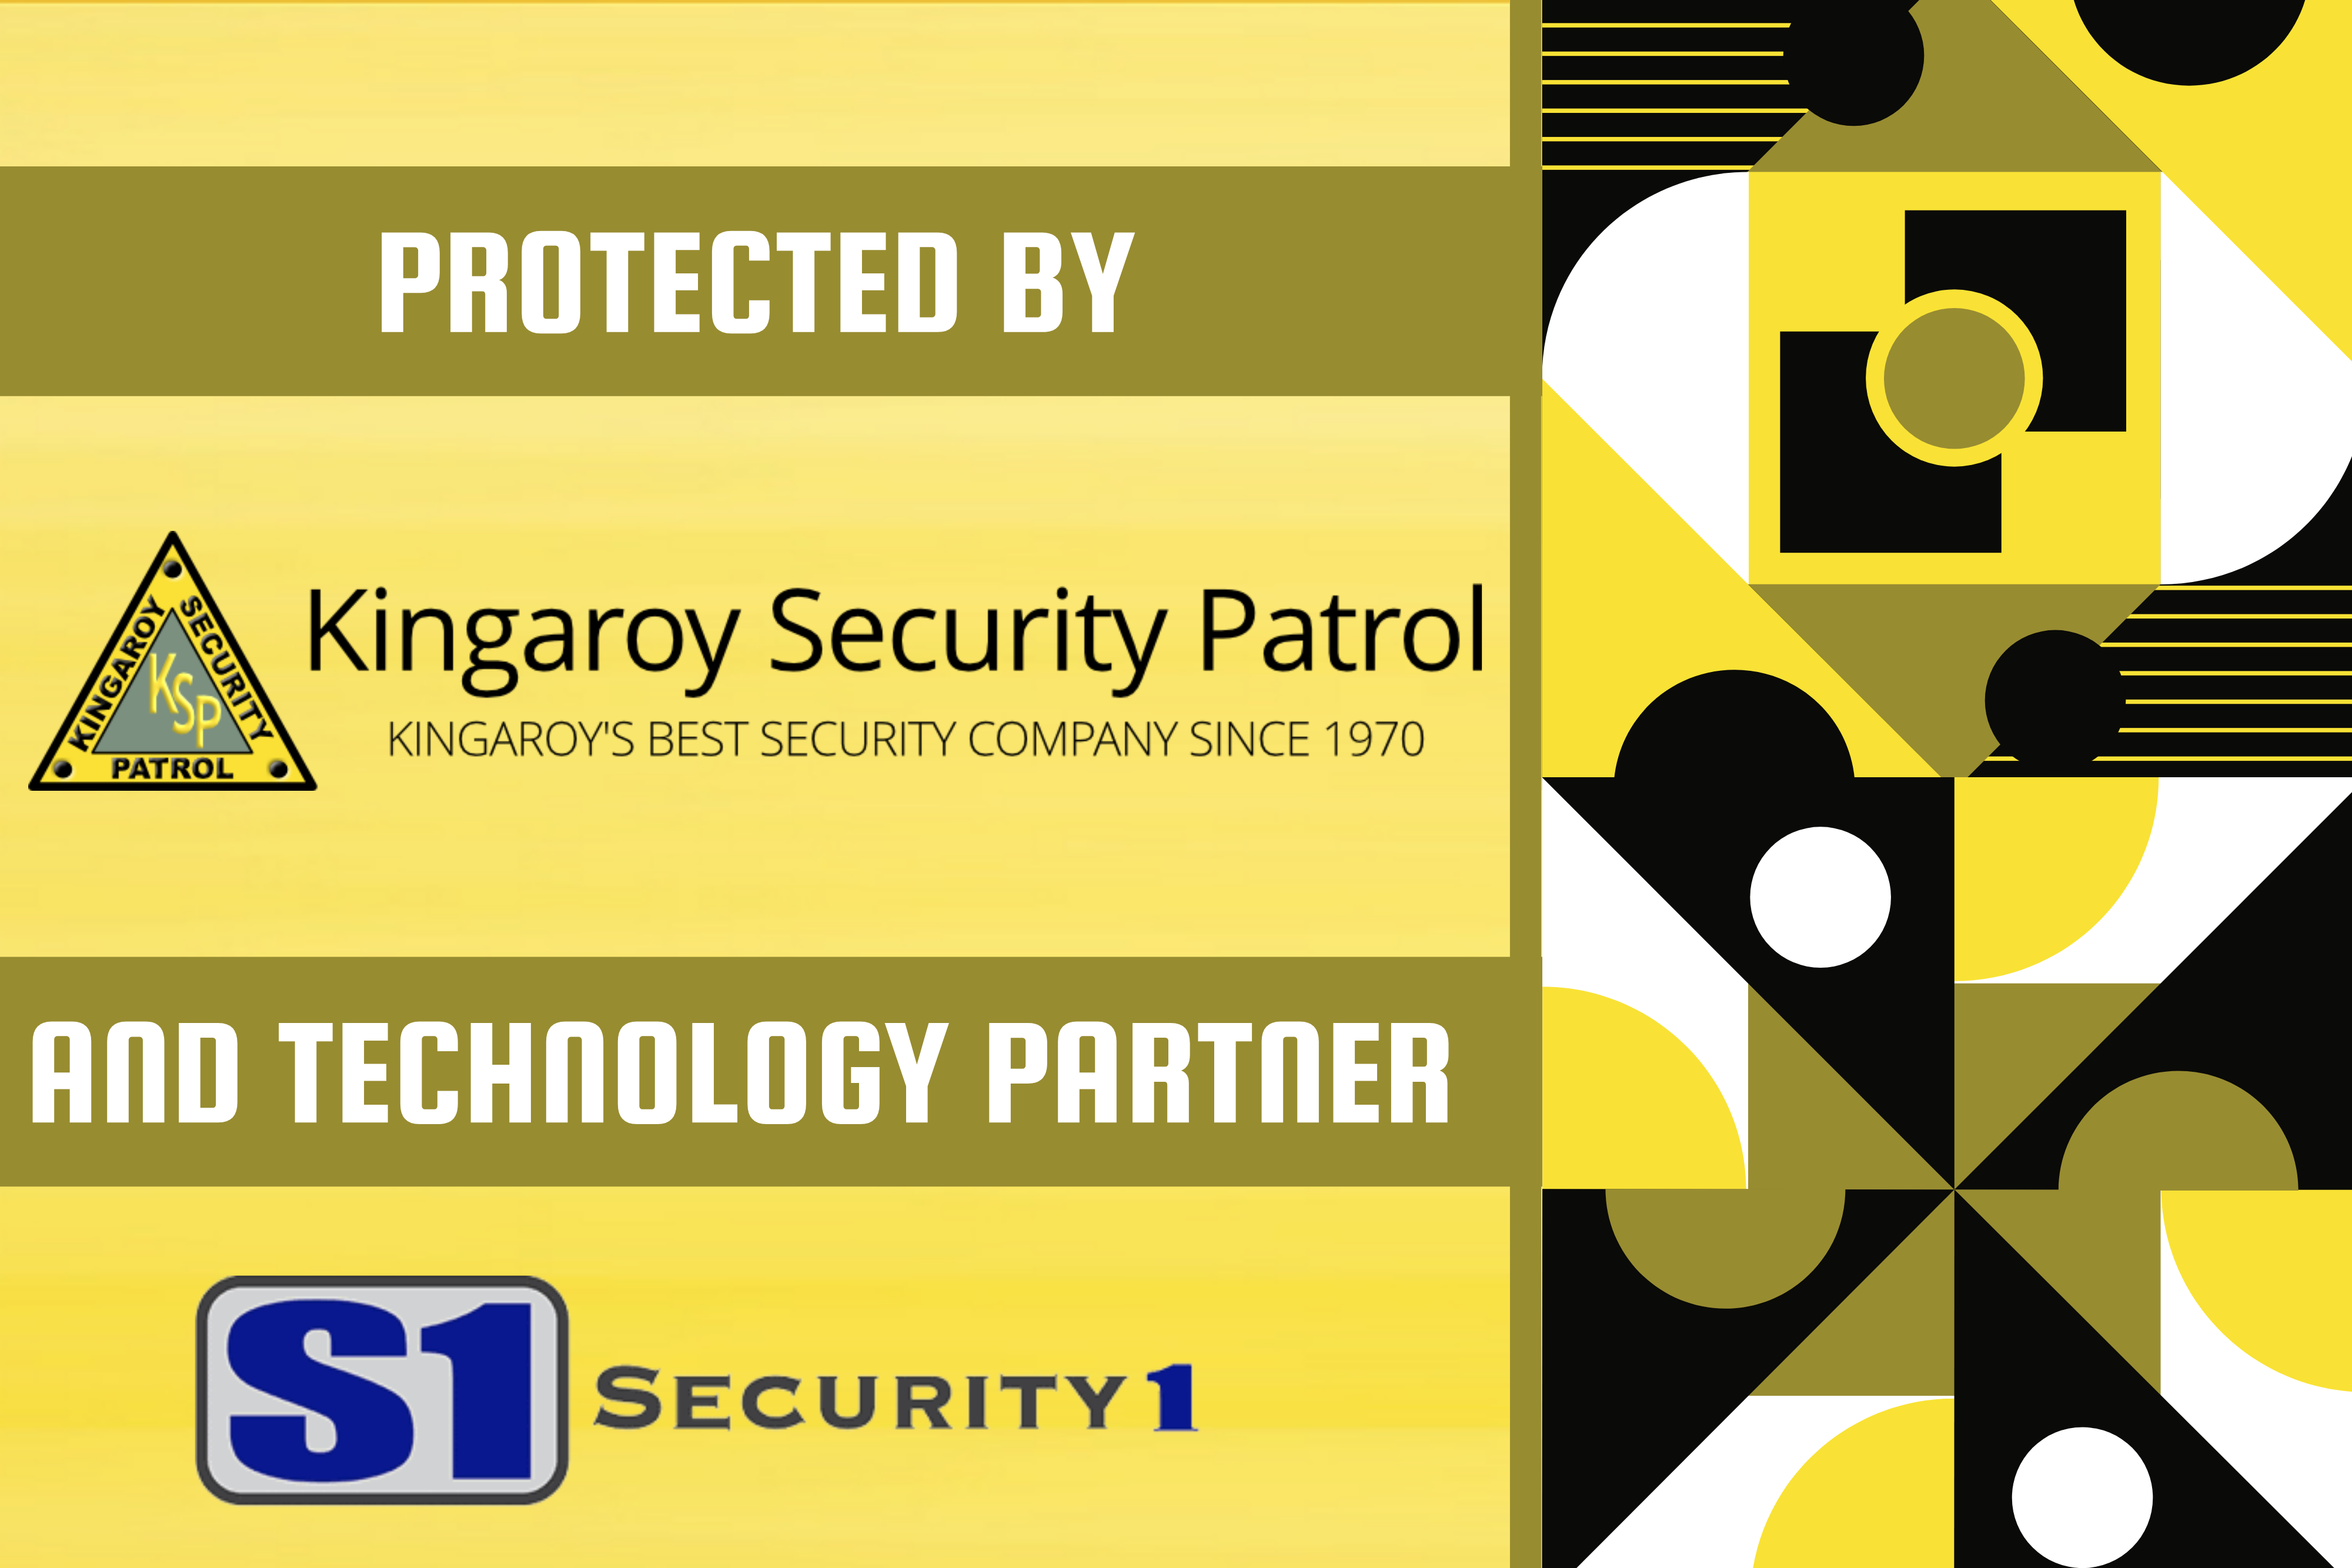 Kingaroy Security Patrol partners with S1 Security